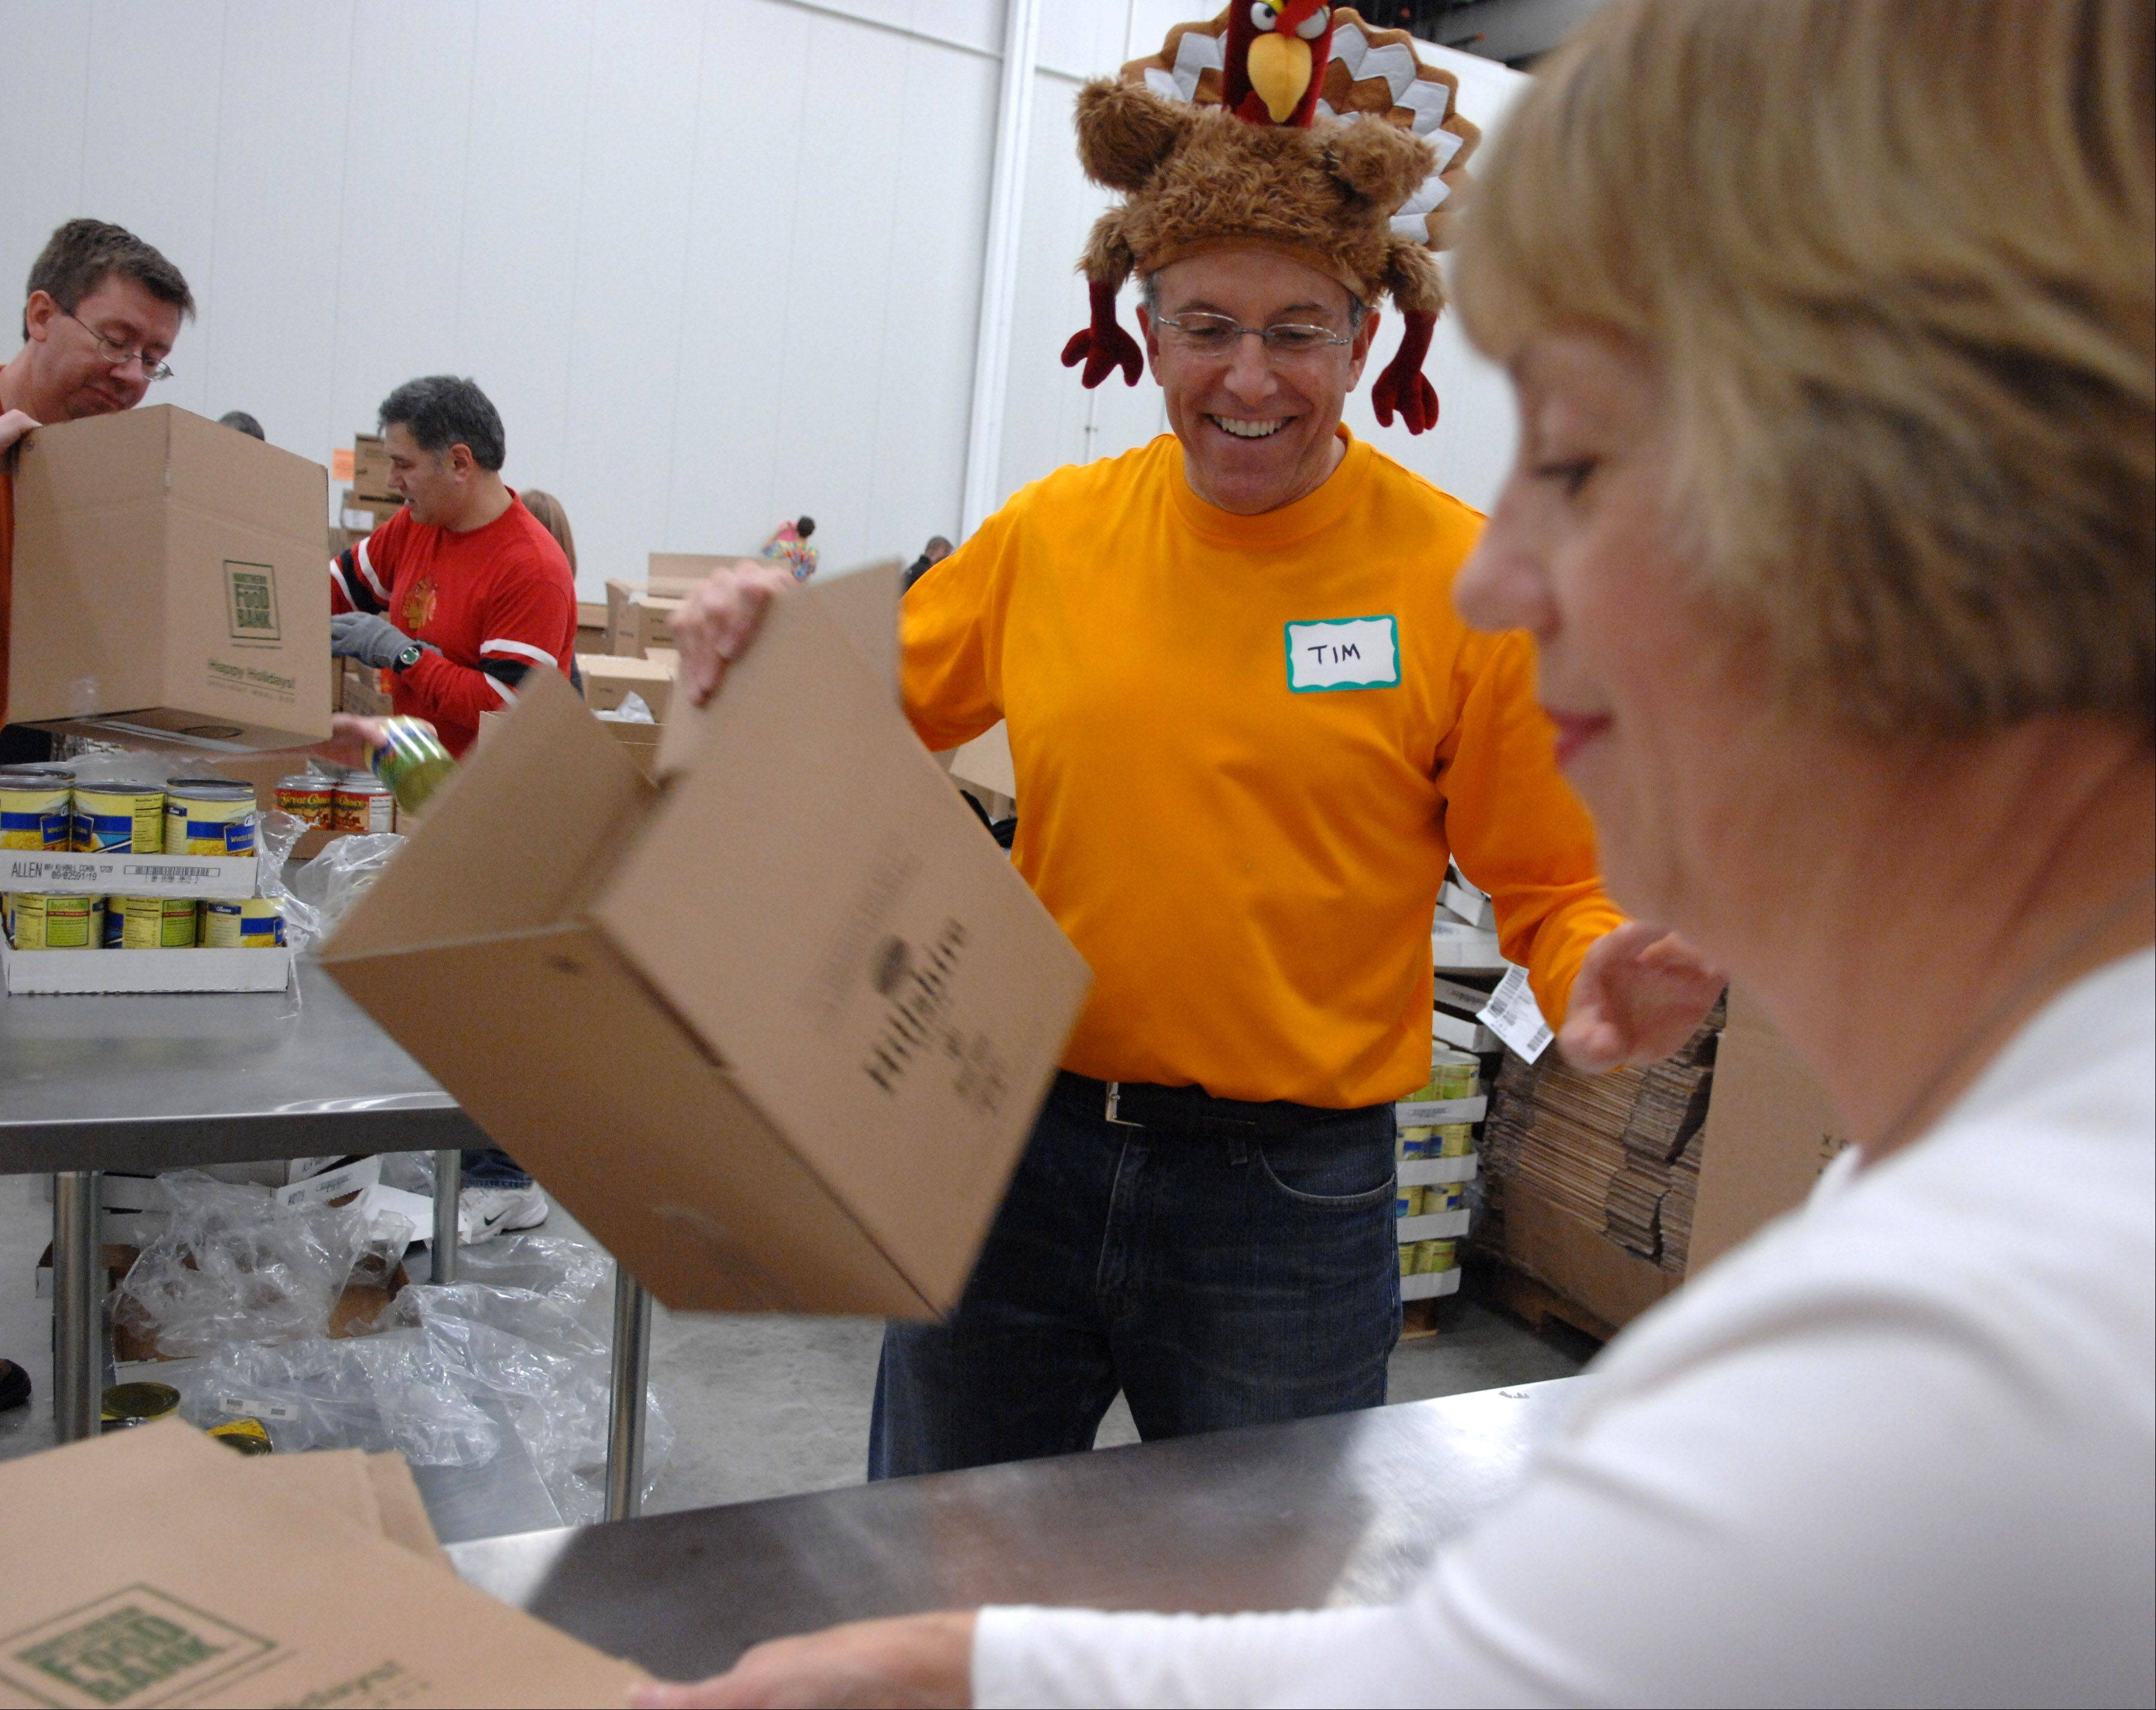 Tim and Donna O'Connor of Wheeling make boxes that are to be loaded with holiday meals as more than 100 employees from Jewel-Osco volunteer Saturday at the Northern Illinois Food Bank in Geneva. The event was one of the first in a six-week program during which the food bank will pack more than 30,000 holiday meals for the less fortunate.